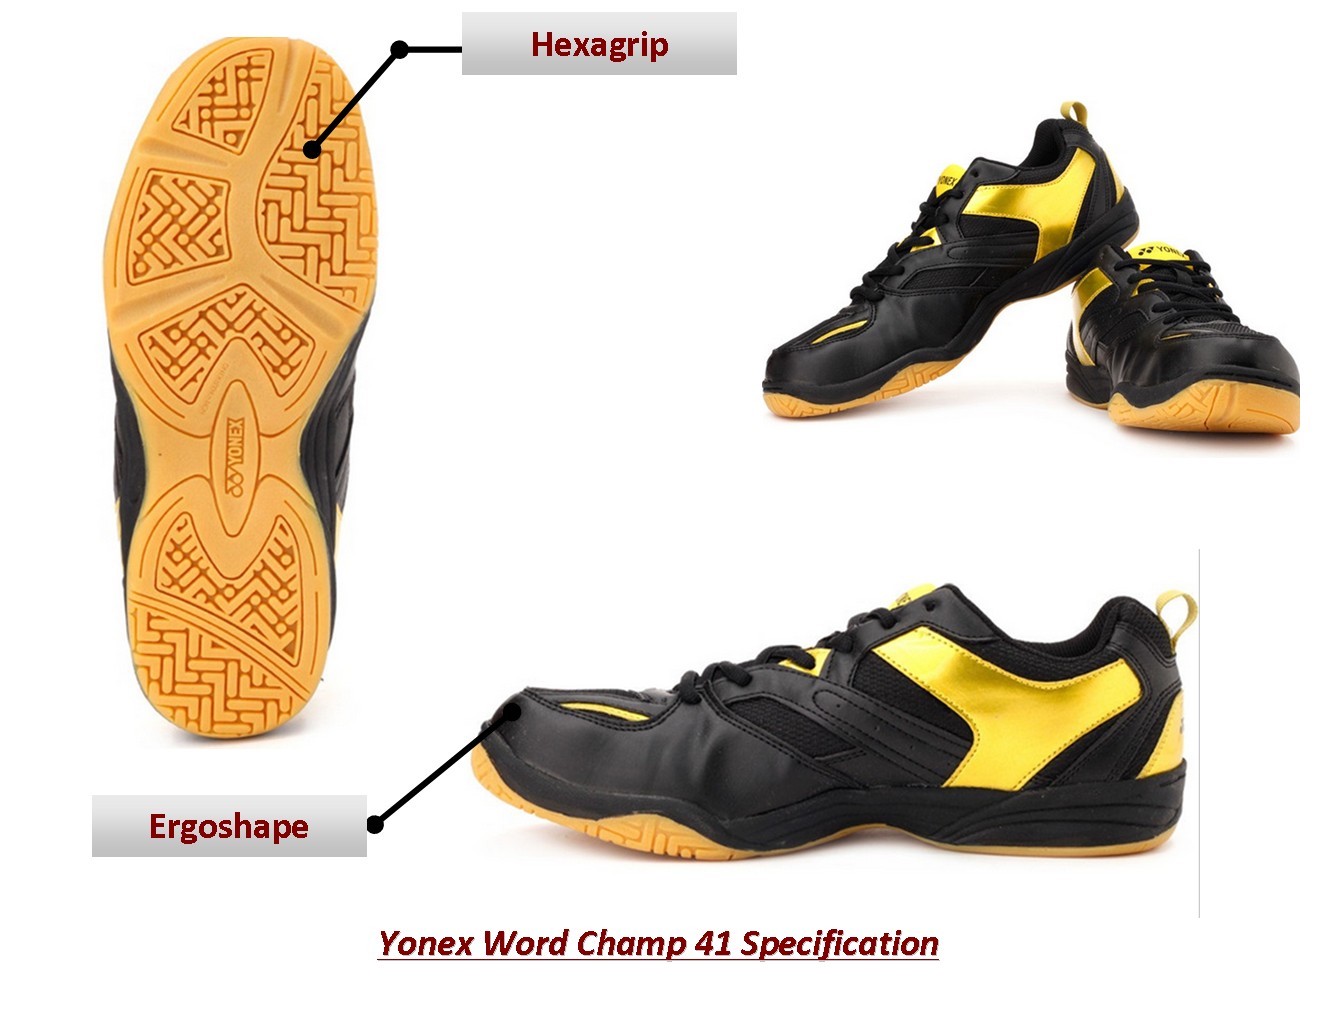 Yonex Badmintin Shoes world champ 41 @Khelmart Yonex Badminton Shoes Yonex WOrld champ 41 Badminton Shoes